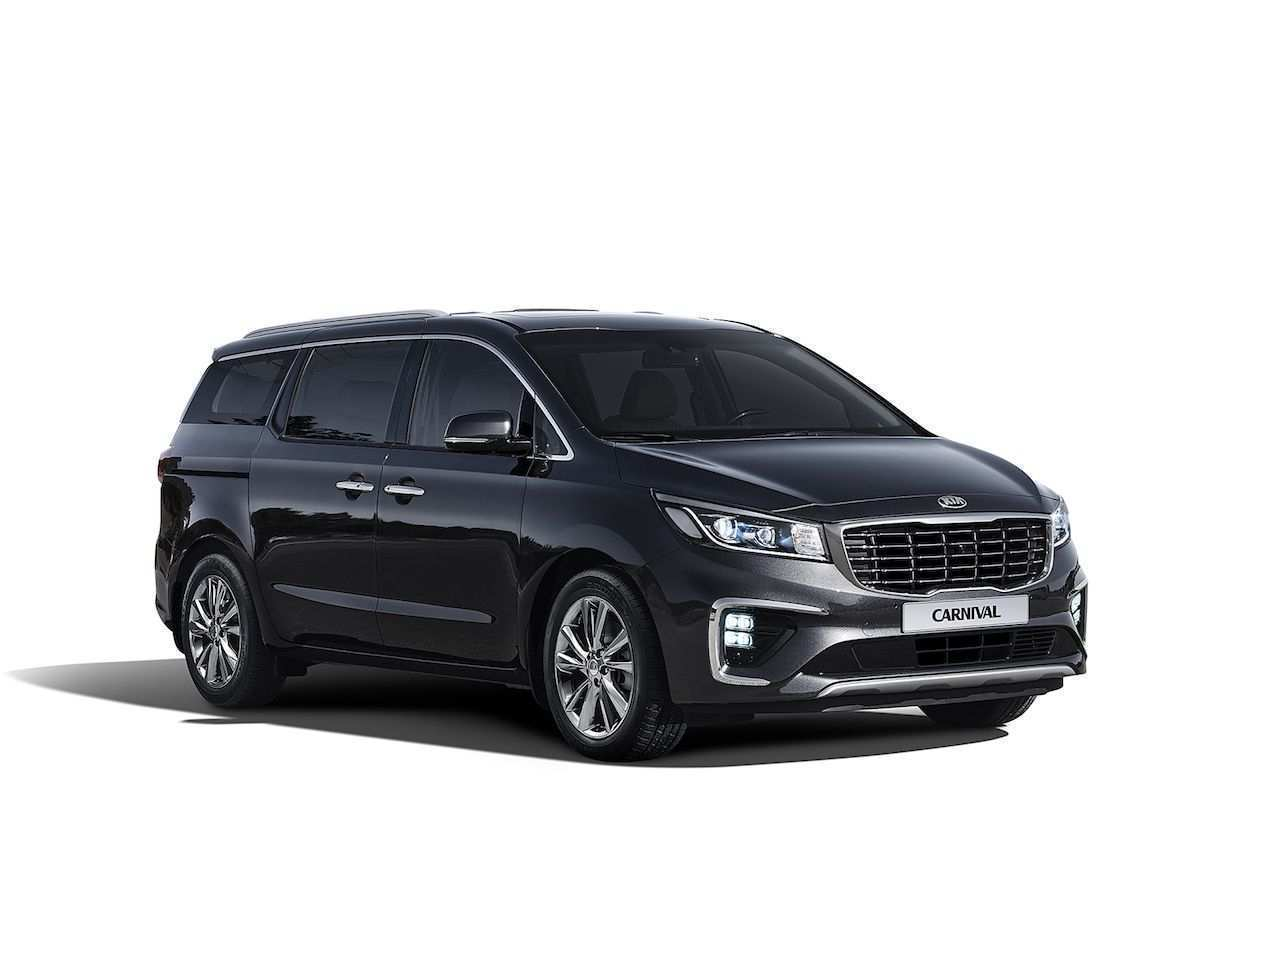 89 Gallery of 2020 Kia Carnival 2018 Pricing with 2020 Kia Carnival 2018